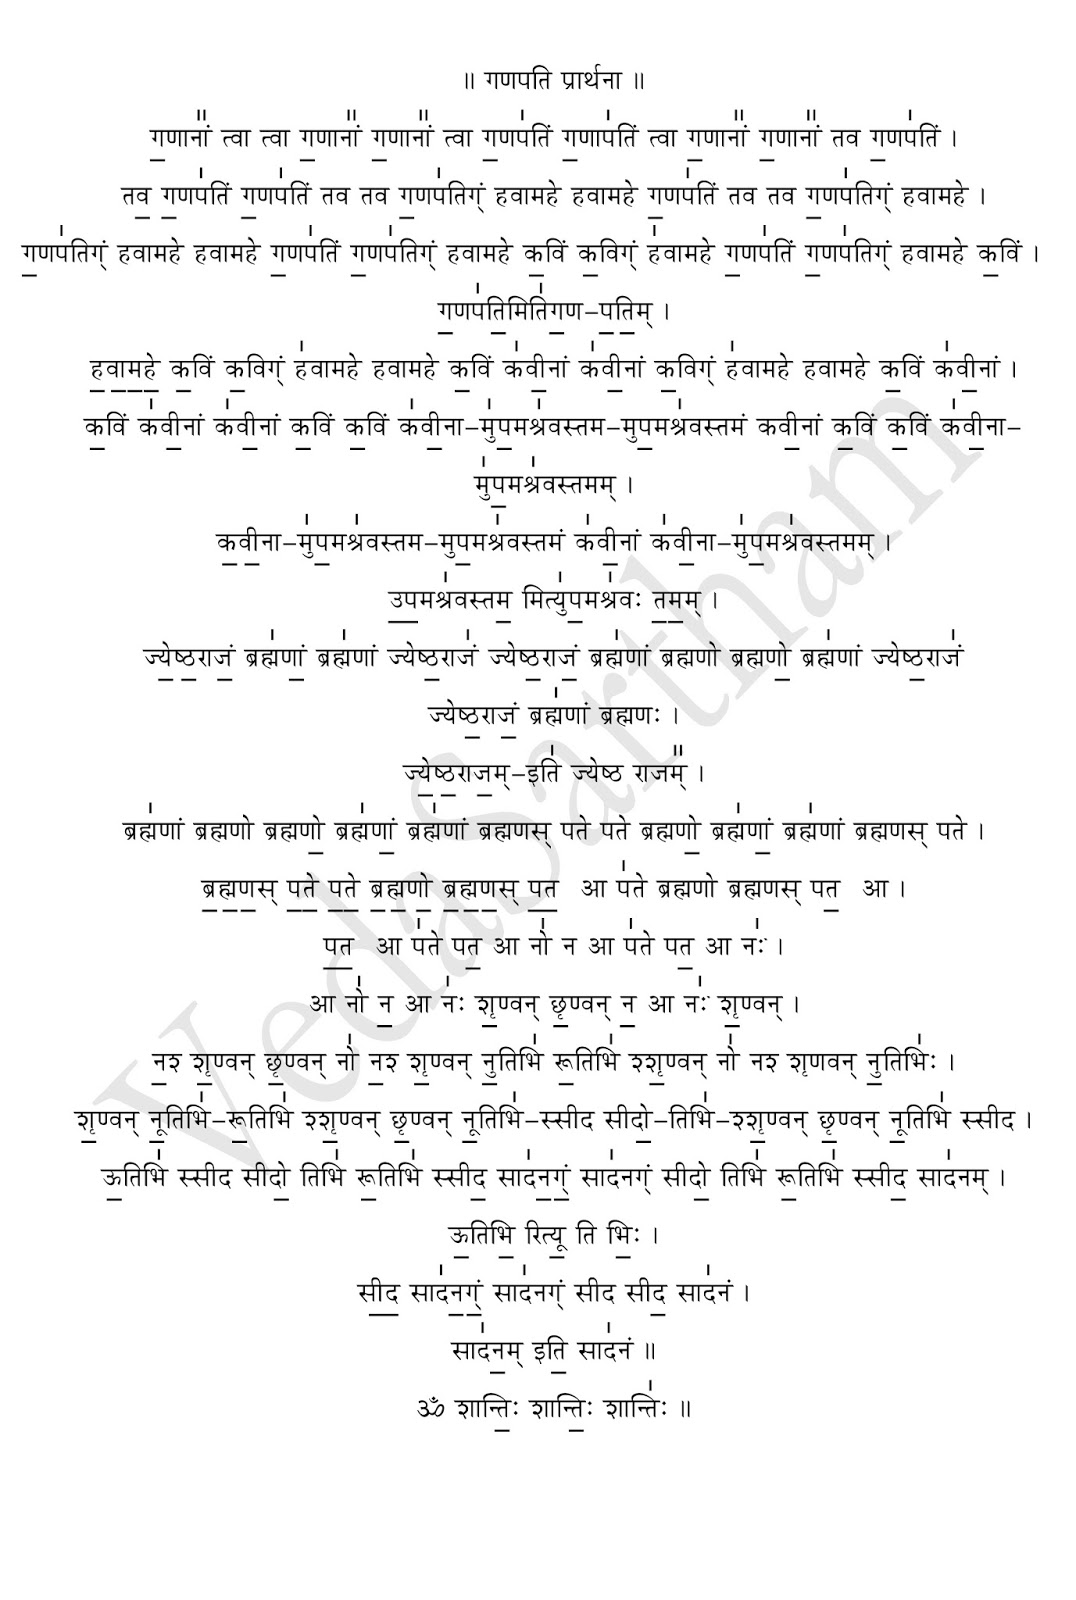 narayana suktam lyrics in english pdf